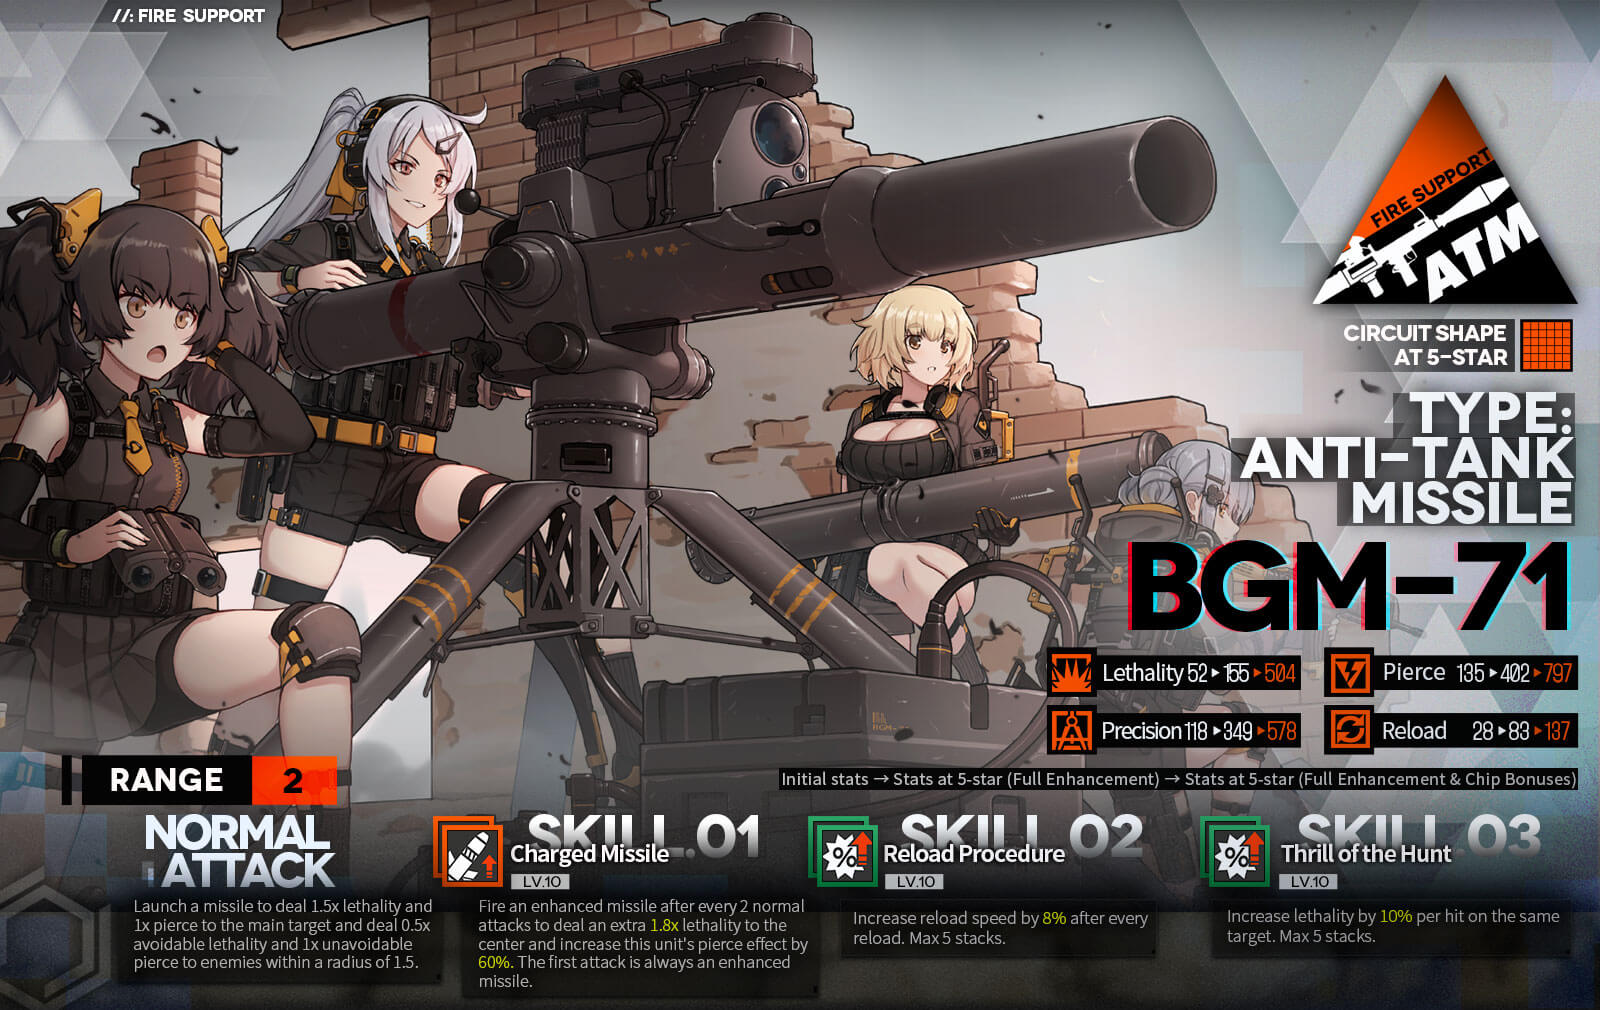 BGM-71's official profile card